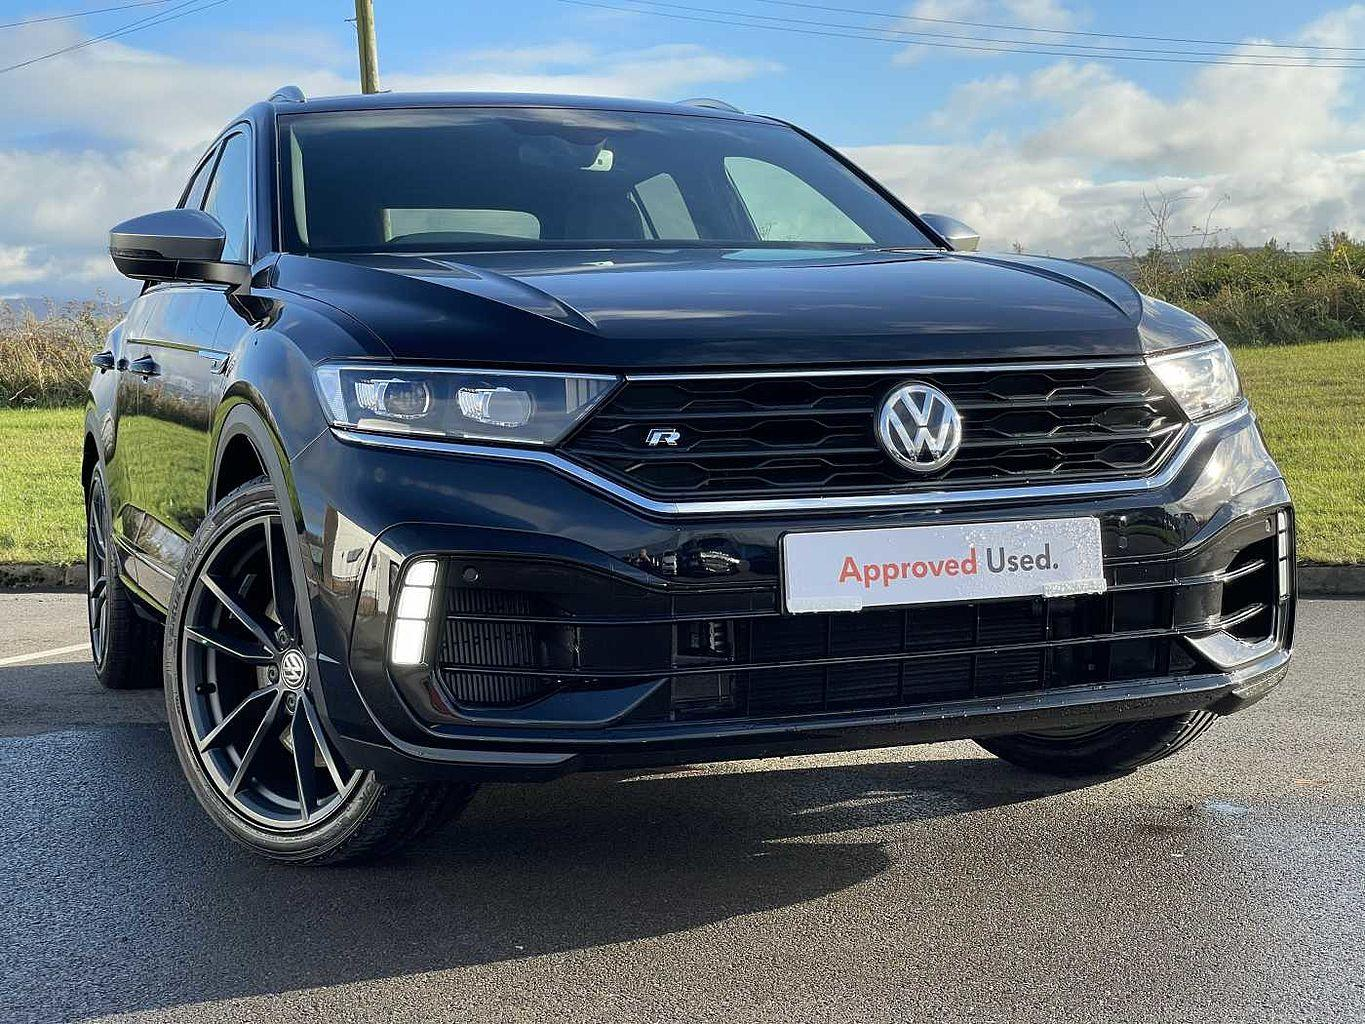 Volkswagen T-roc 2.0 TSI R 300PS 4Motion DSG Hatchback Petrol Deep black